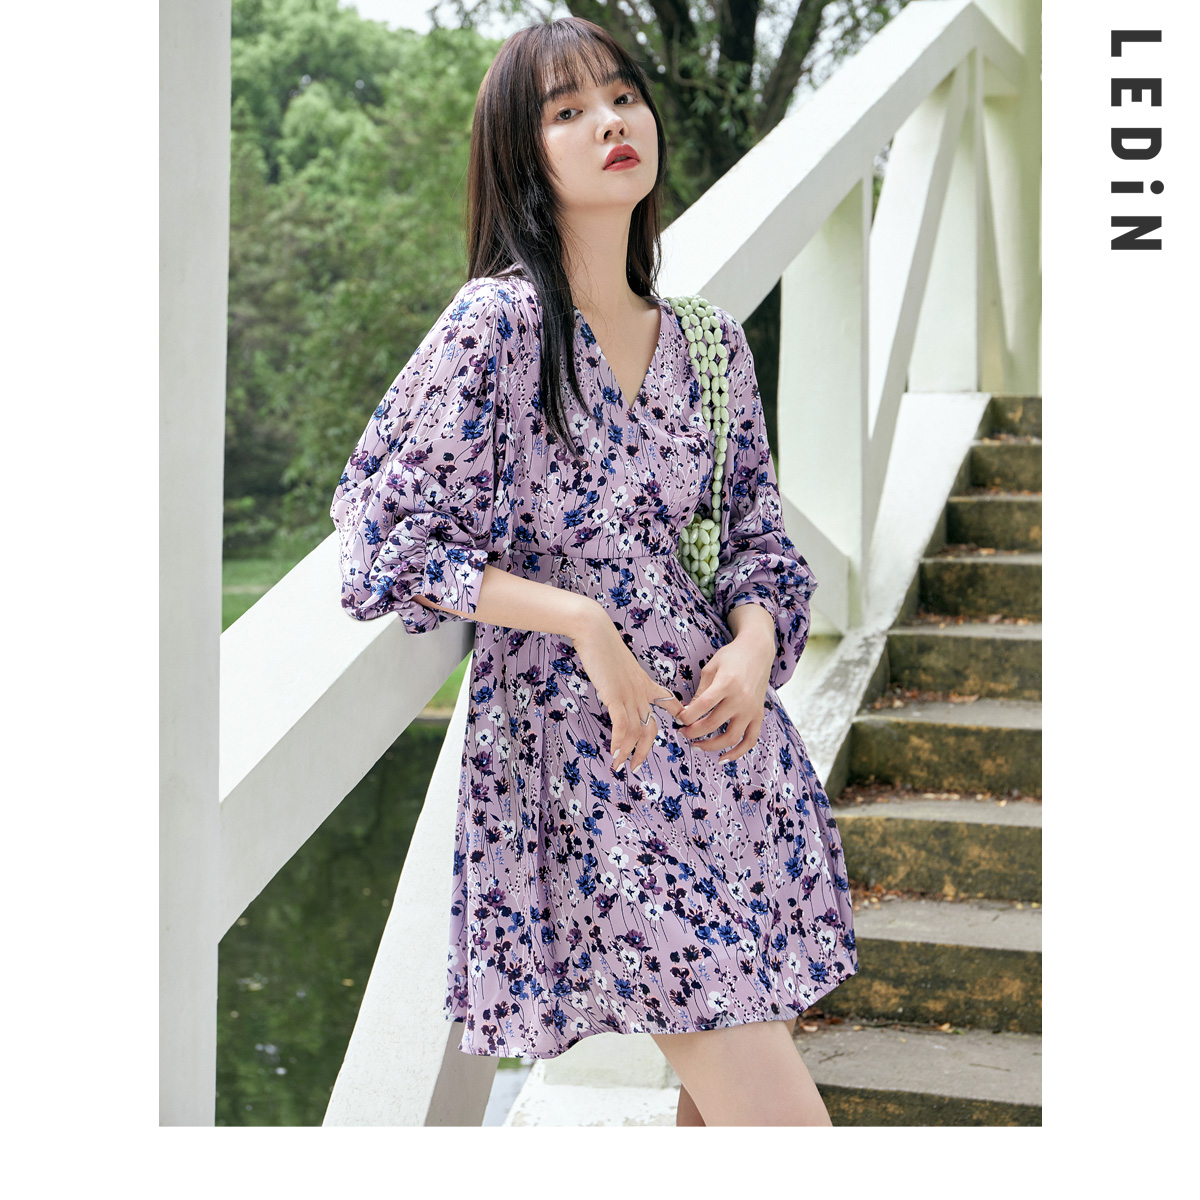 Leding floral dress female 2021 new spring women's elegant floral French niche dress